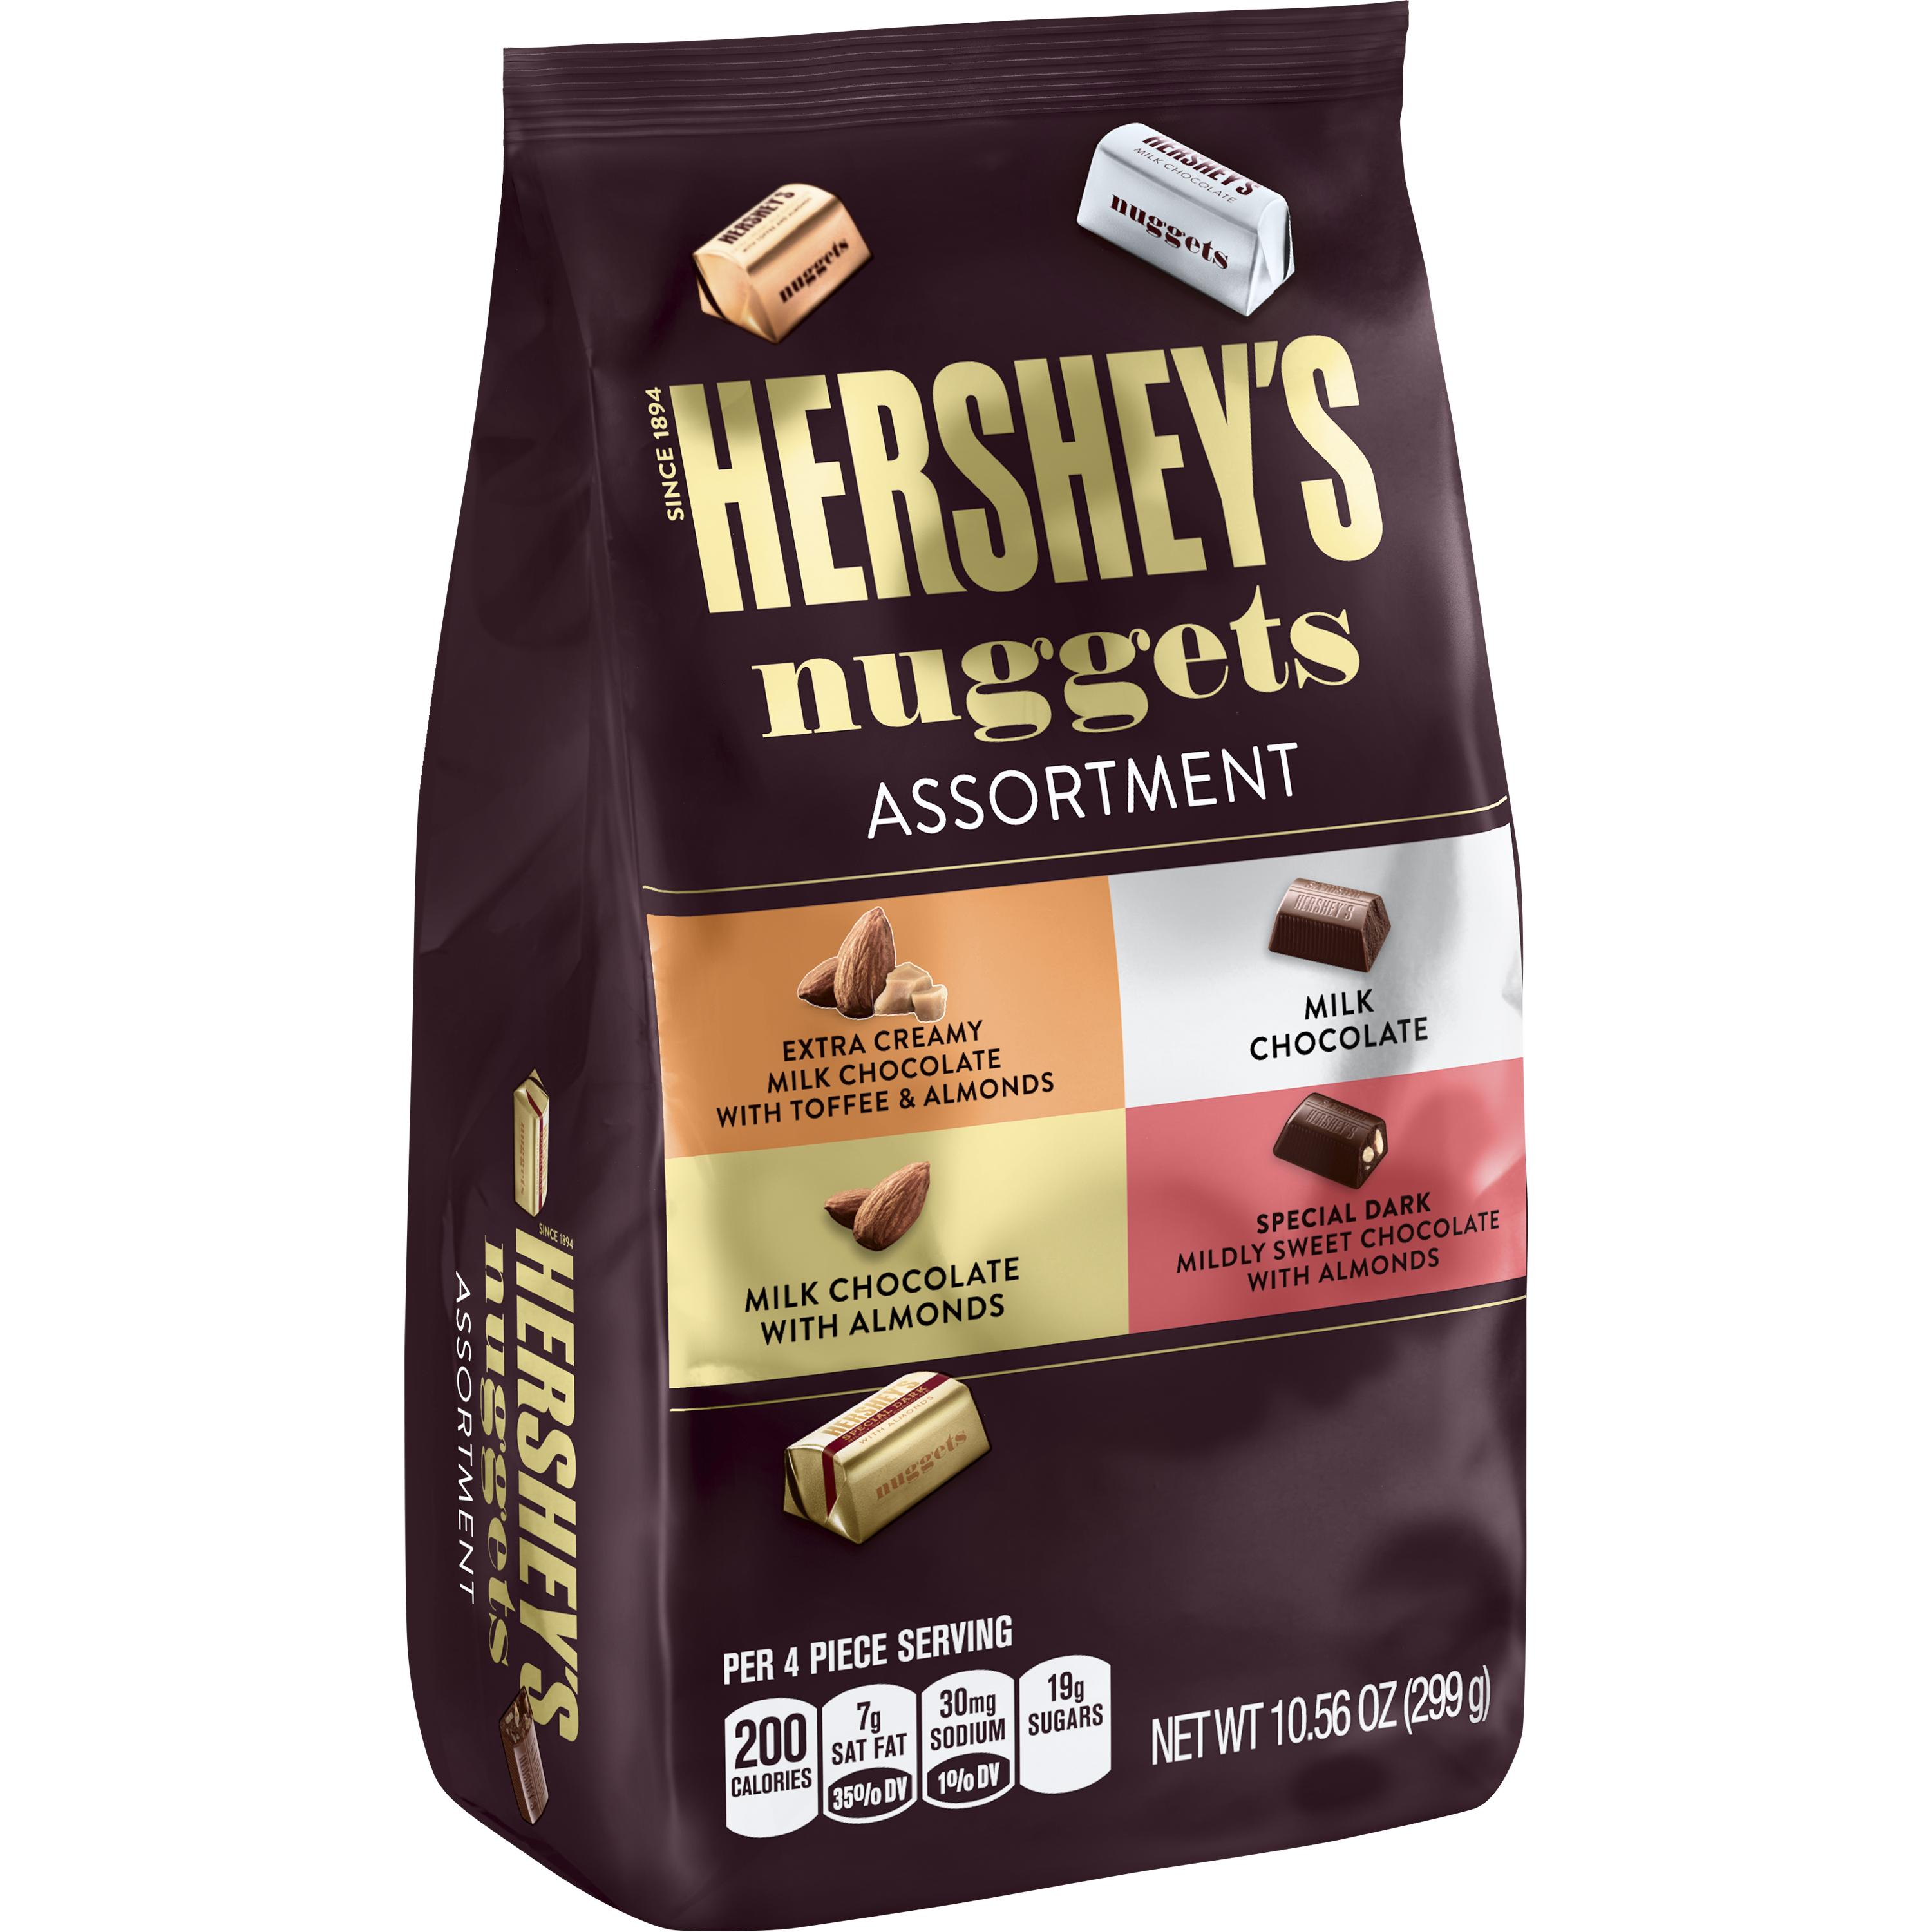 Hershey's Nuggets, Chocolate Candy Assortment, 10.56 Oz